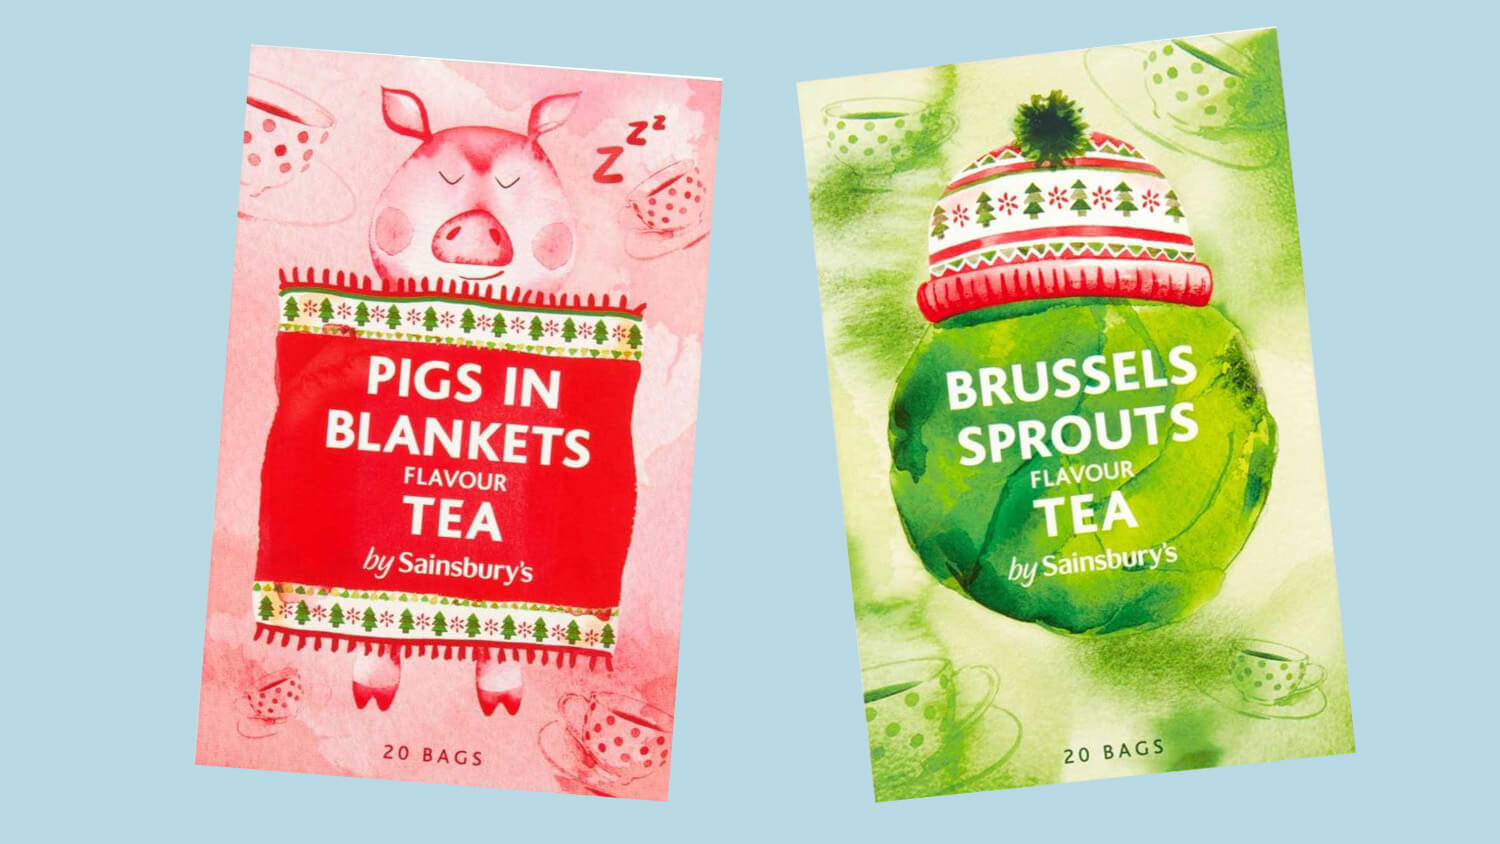 Vegan Pigs In Blankets and Brussels Sprouts Flavored Tea Launches At Sainsbury's